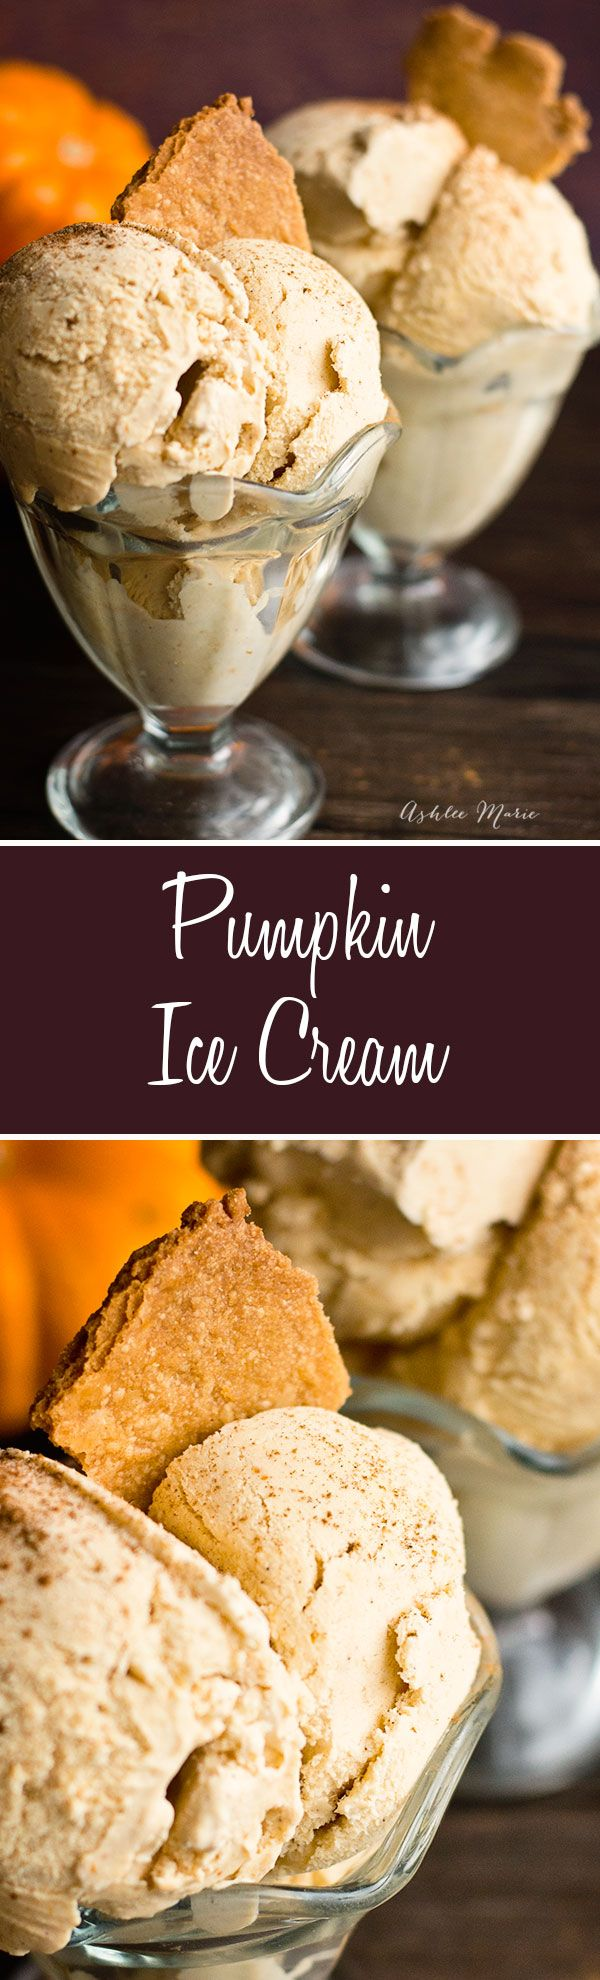 This ice cream is like a cold creamy pumpkin pie, always a hit at my house.   Fall   Winter   Autumn   Ice Cream   #pumpkinicecream #holidayicecream #falltreats